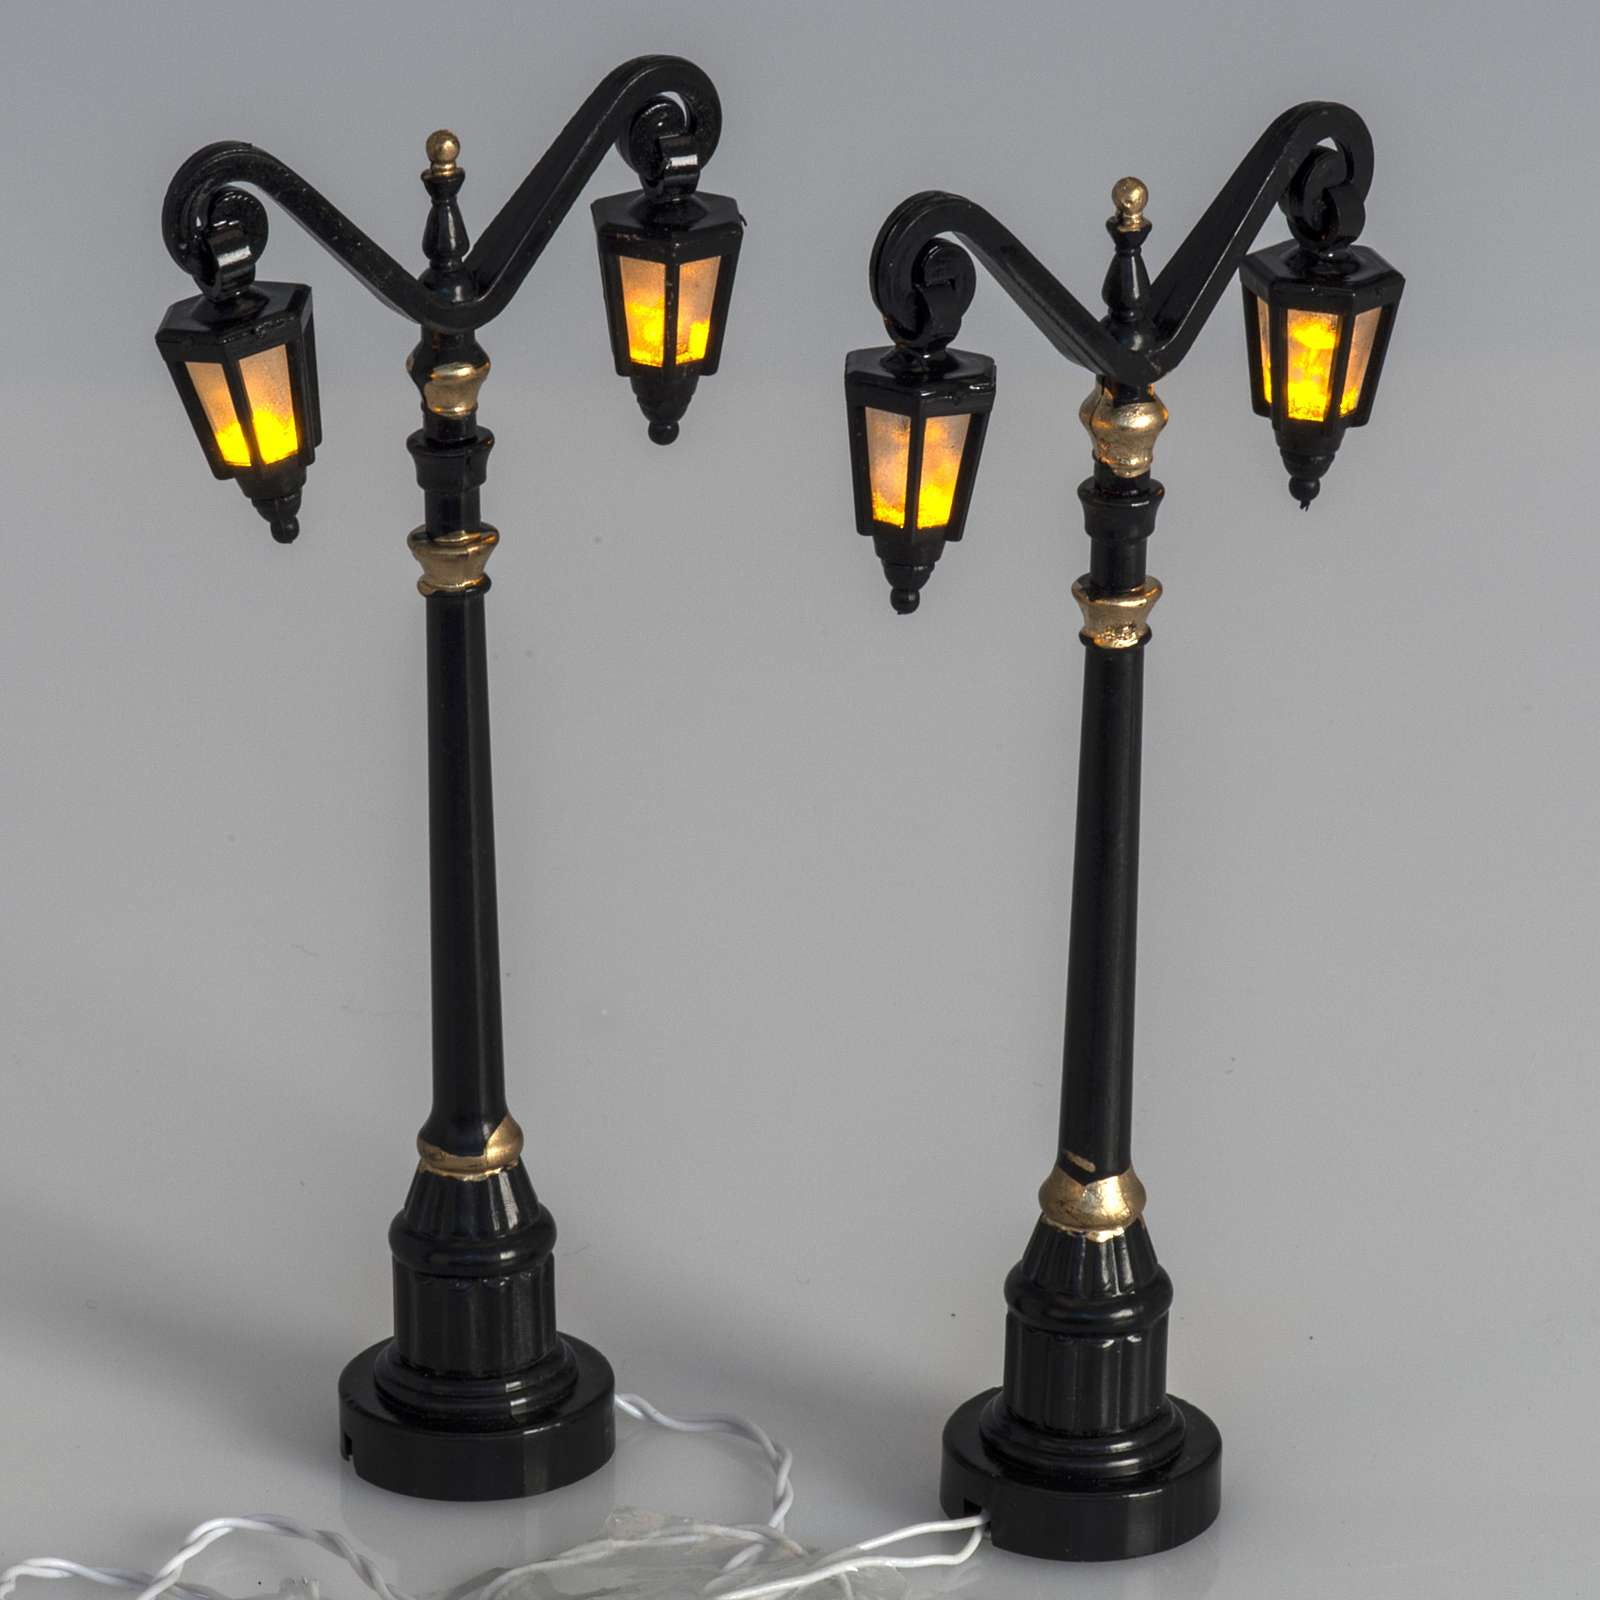 Battery powered street lamps, set of 2, H10cm 4